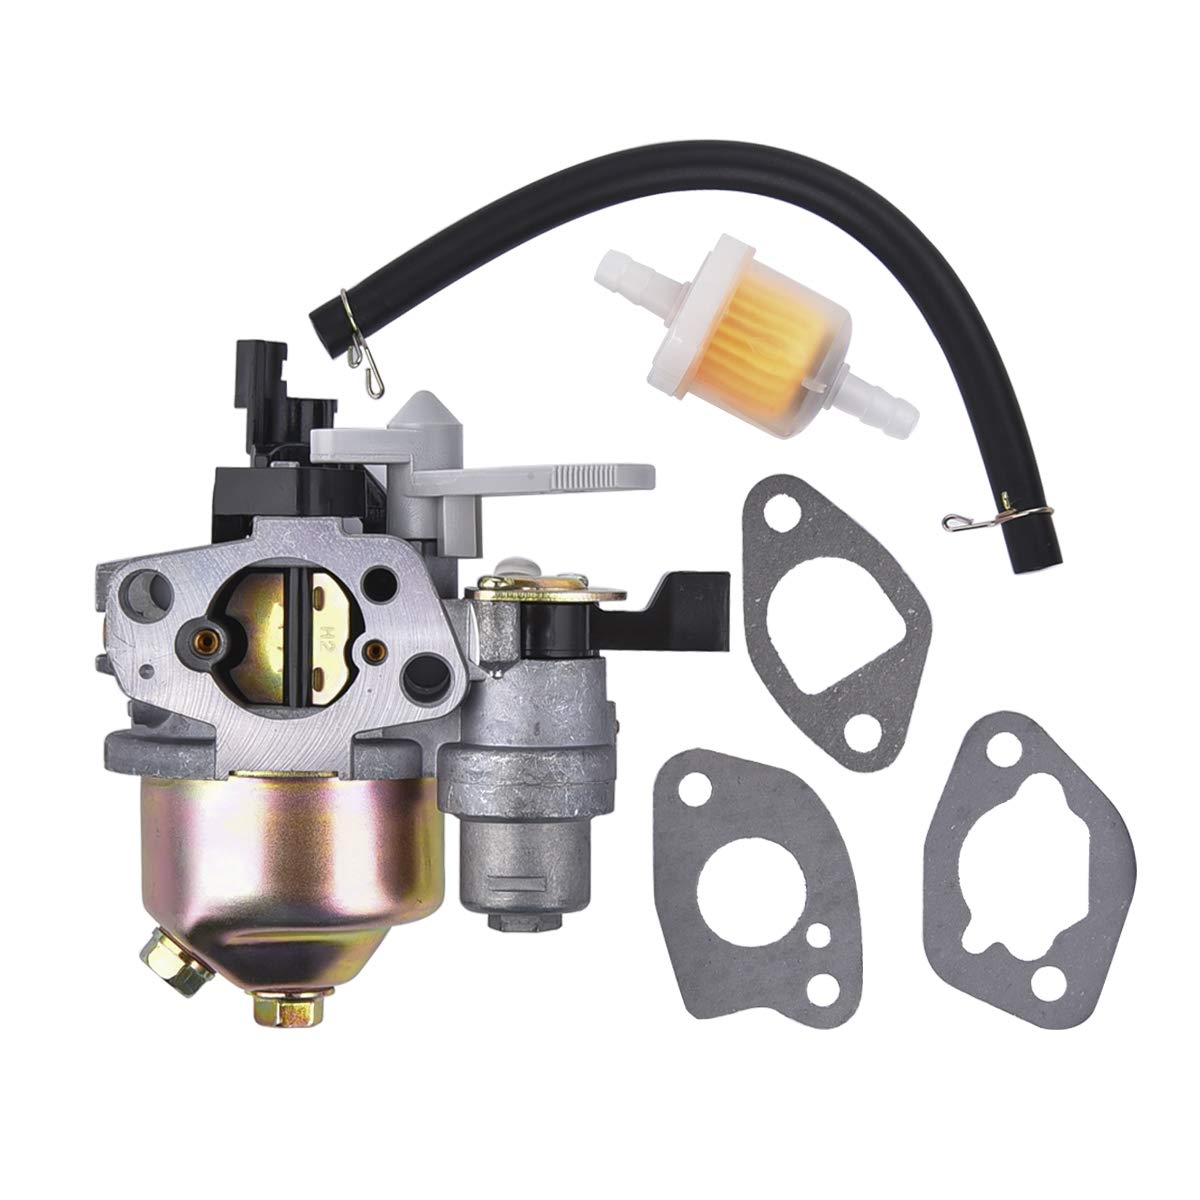 Carburetor with Gasket Set for Coleman Powersports KT196 196cc 5.5HP 6.5HP OHV Engine Go Kart Carb